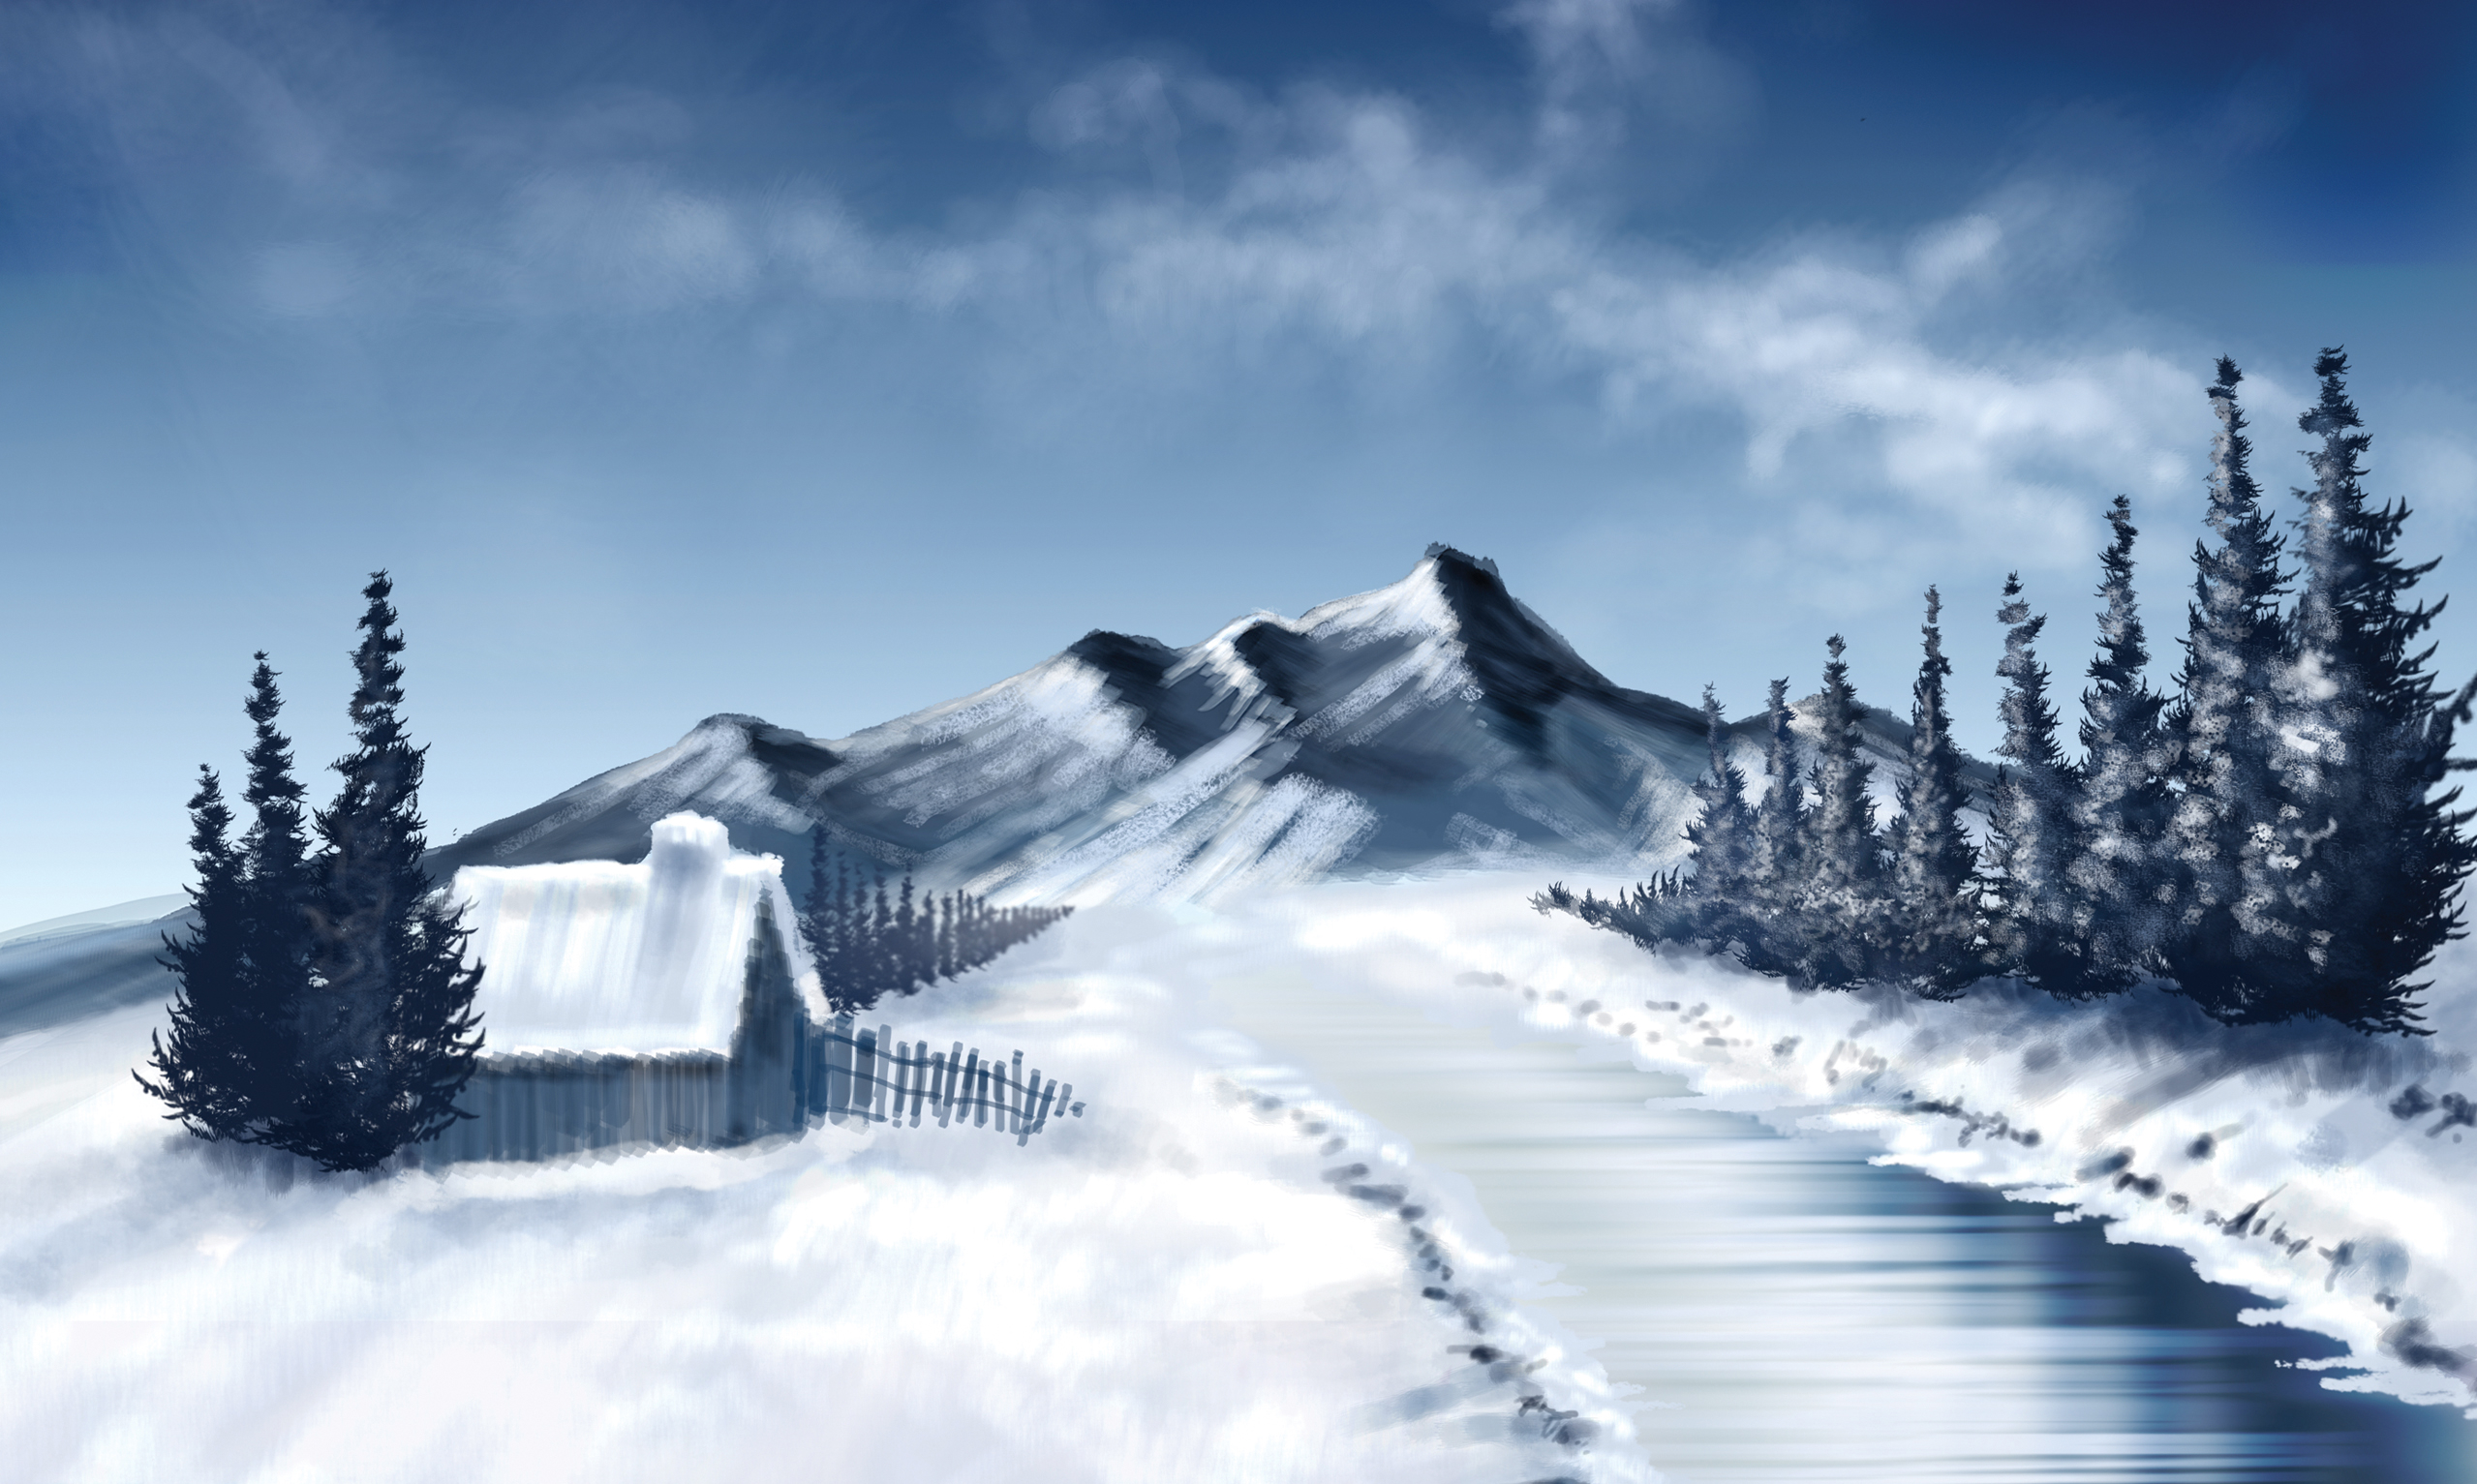 Artistic - Winter  Wallpaper